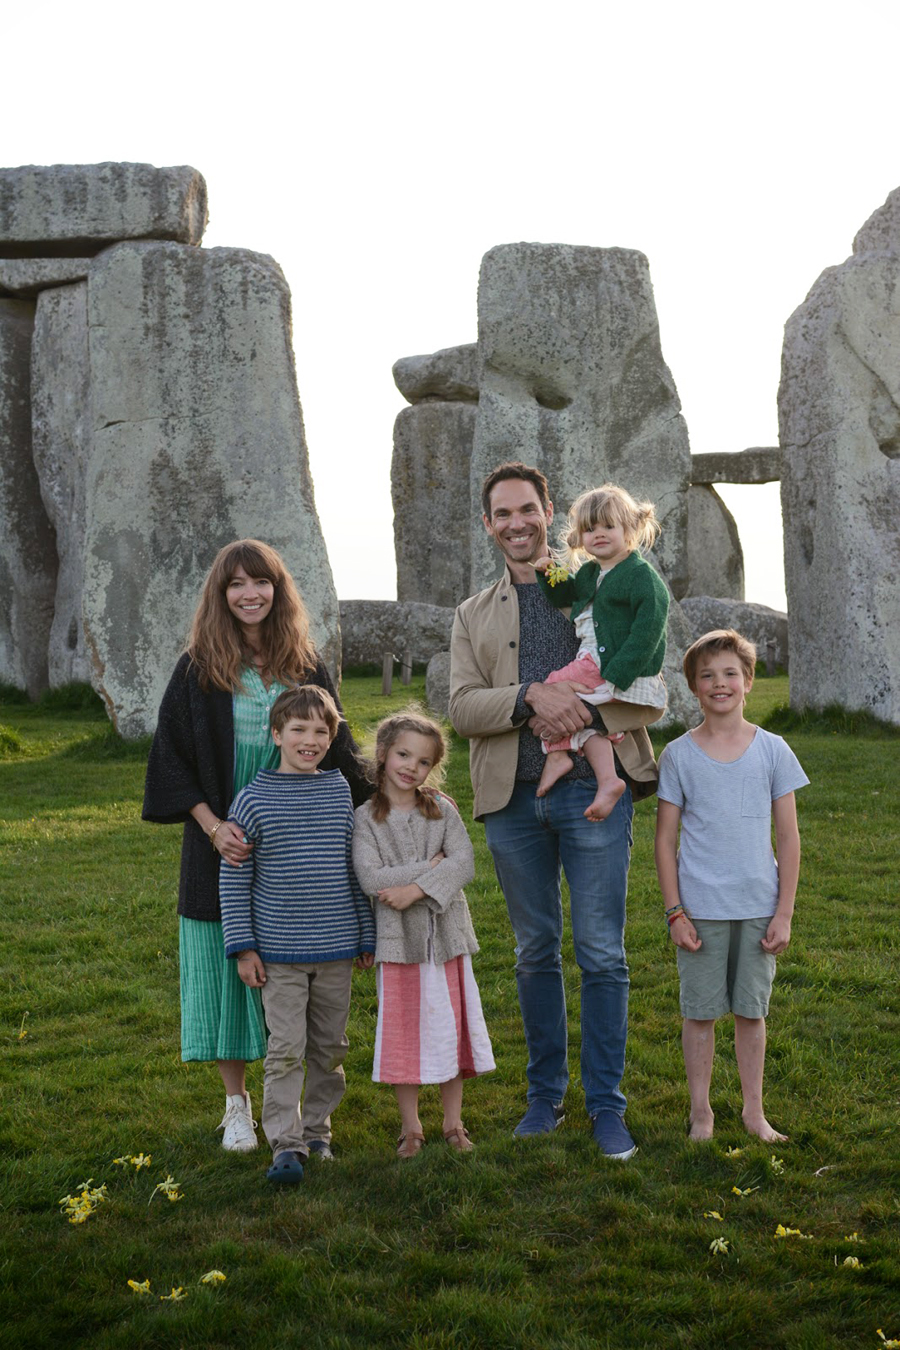 Adamo Family at Stonehenge